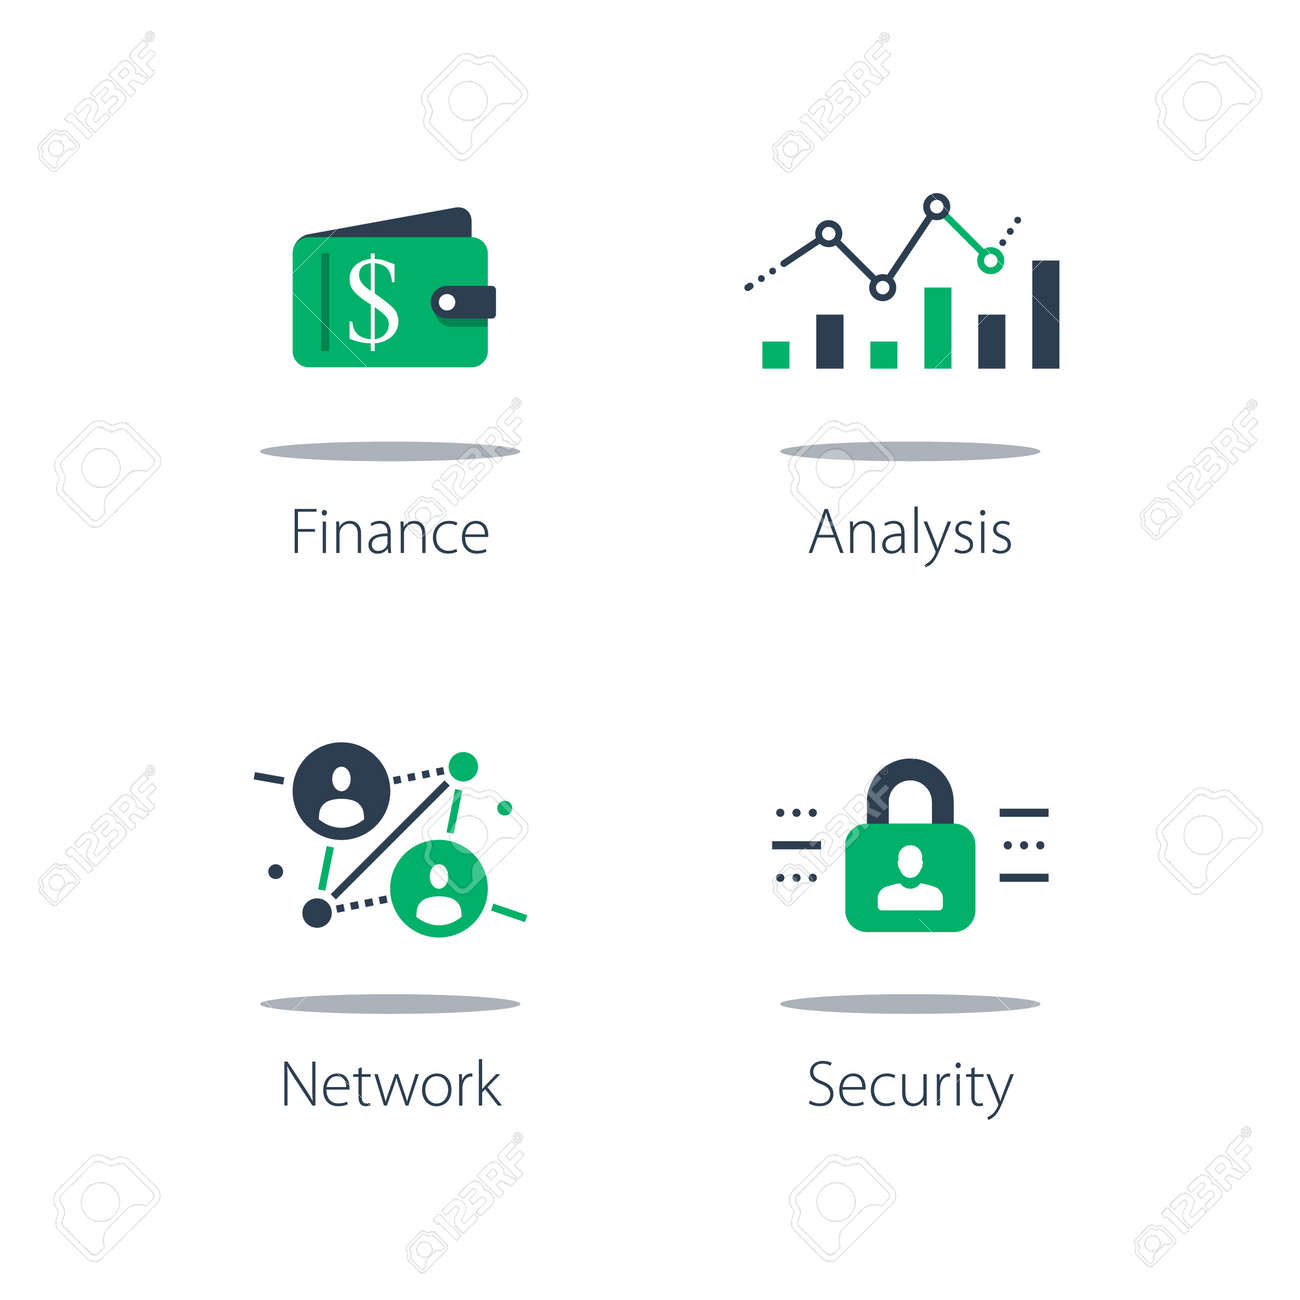 Online finance, internet banking, web security, computer monitor and padlock, financial security system - 150740354